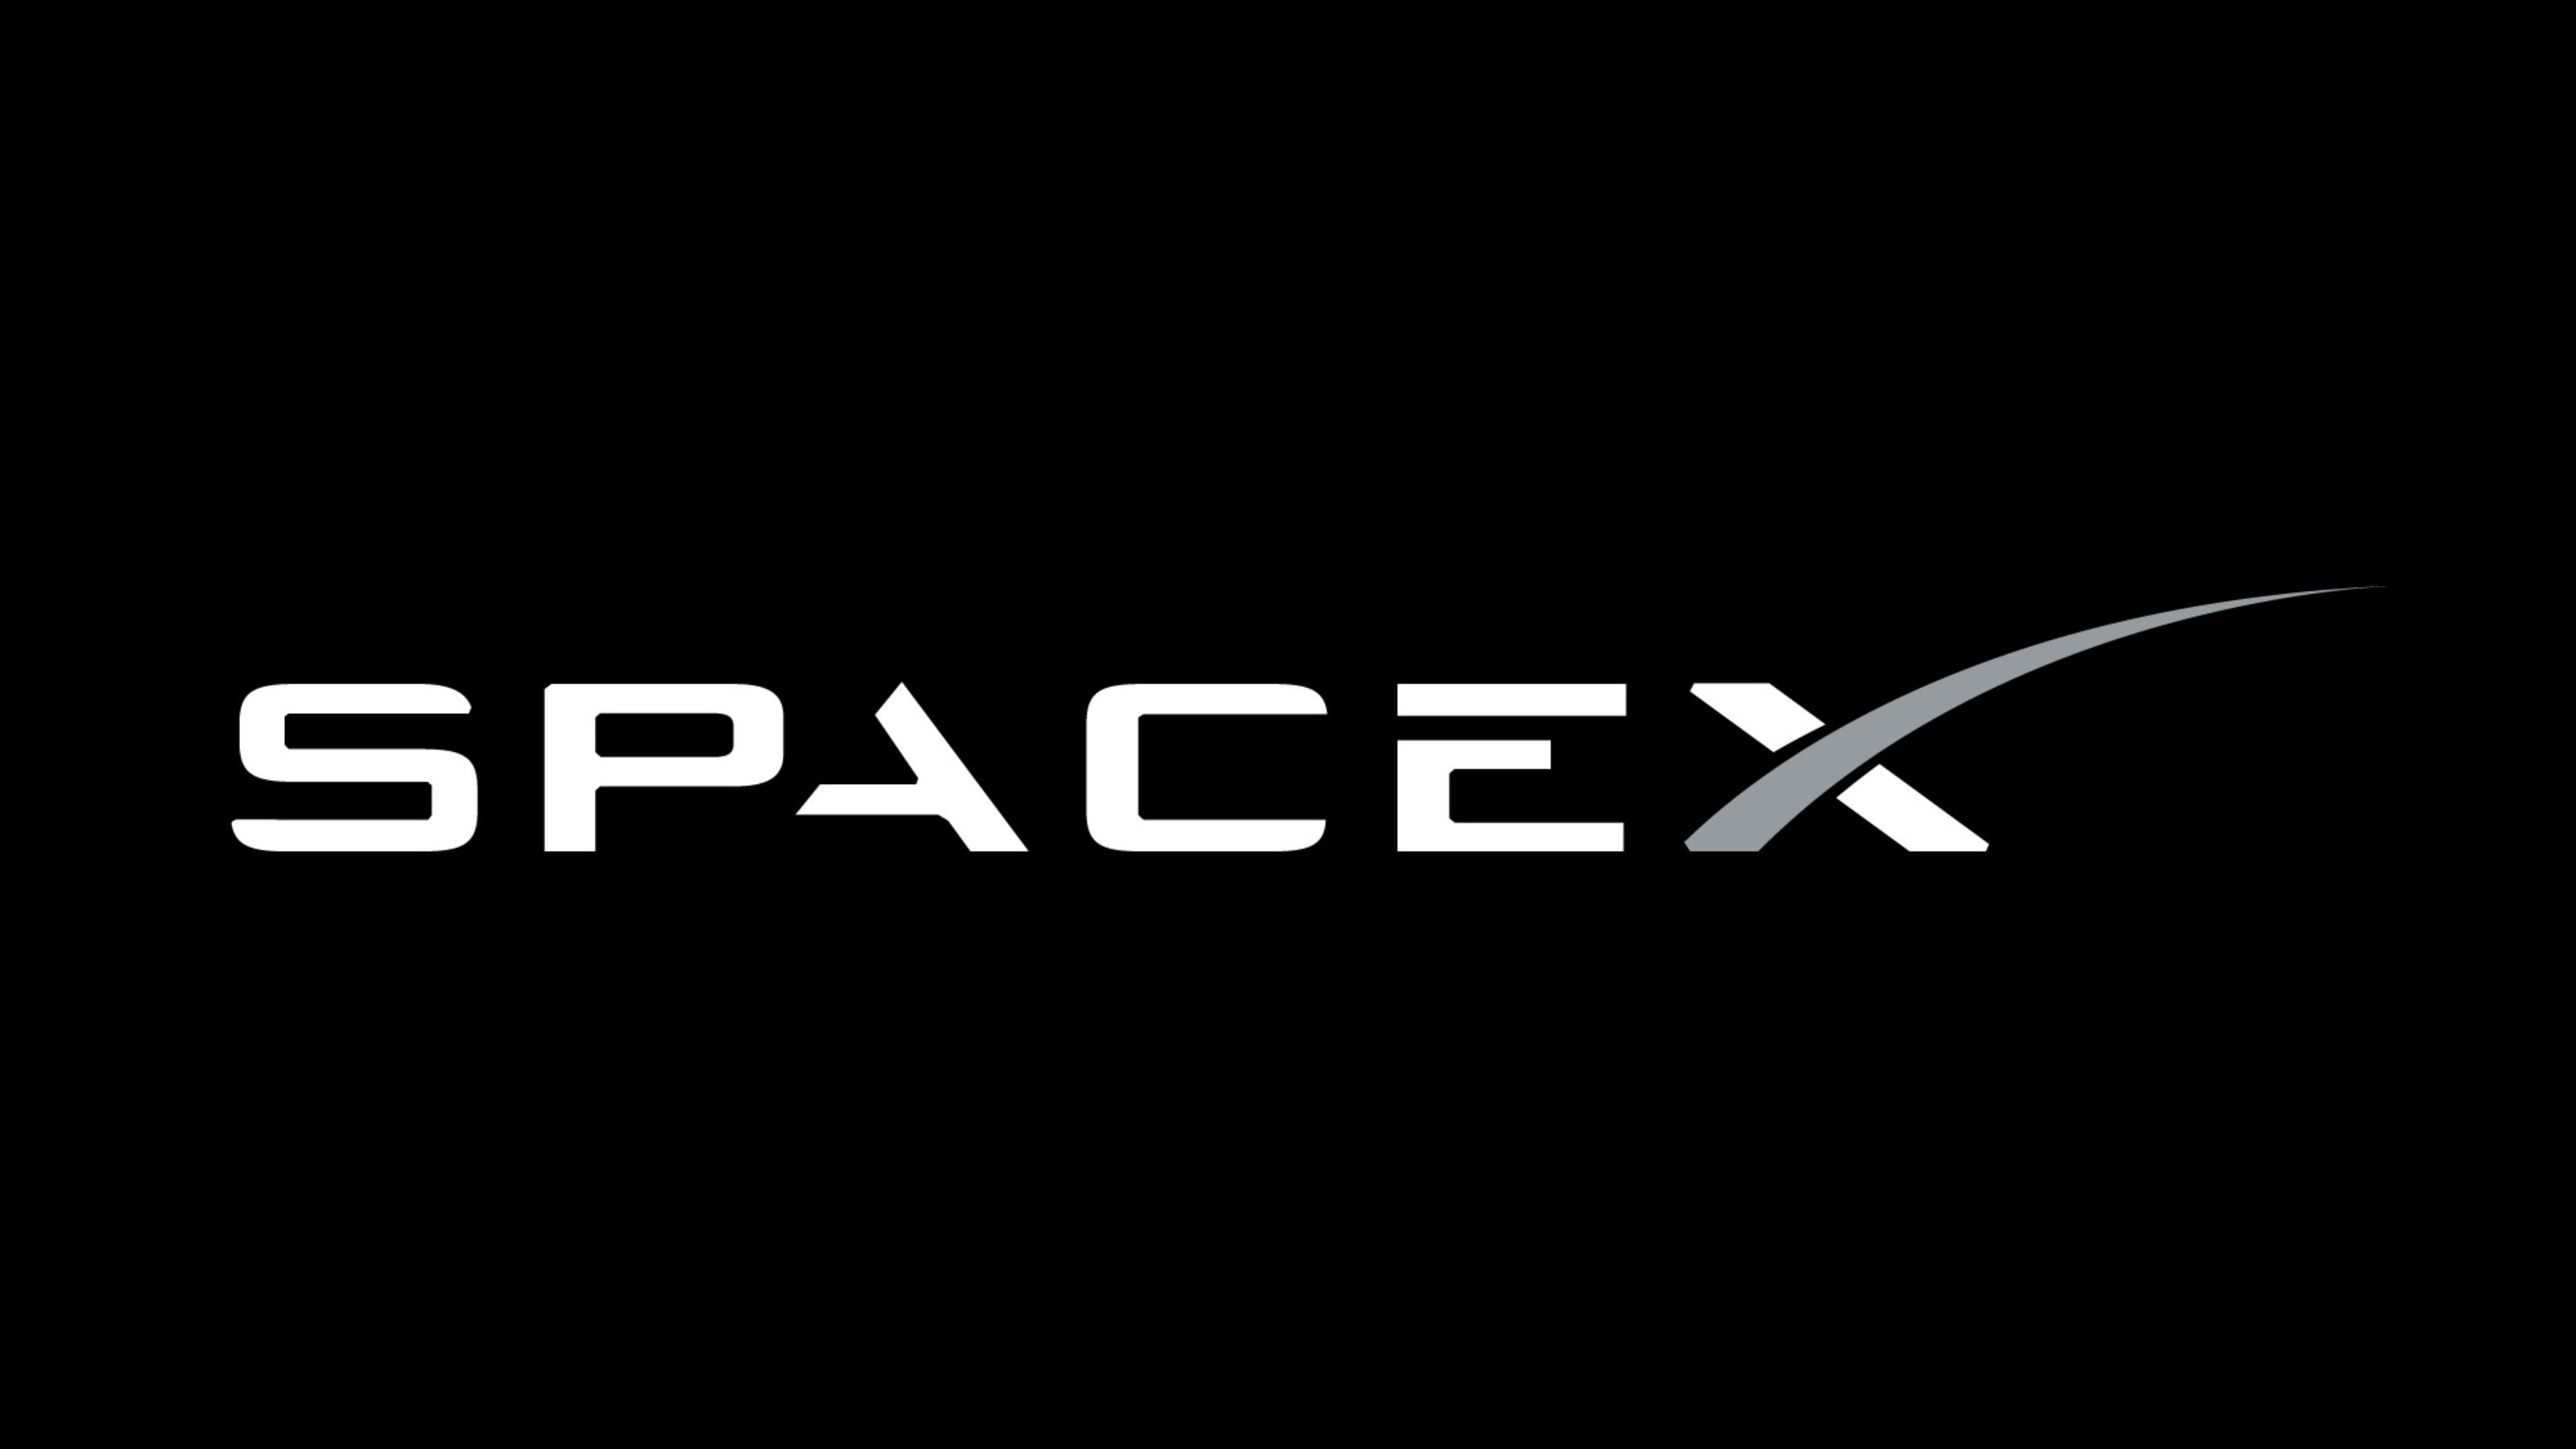 Spacex wallpapers images photos pictures backgrounds - Wallpaper photos ...